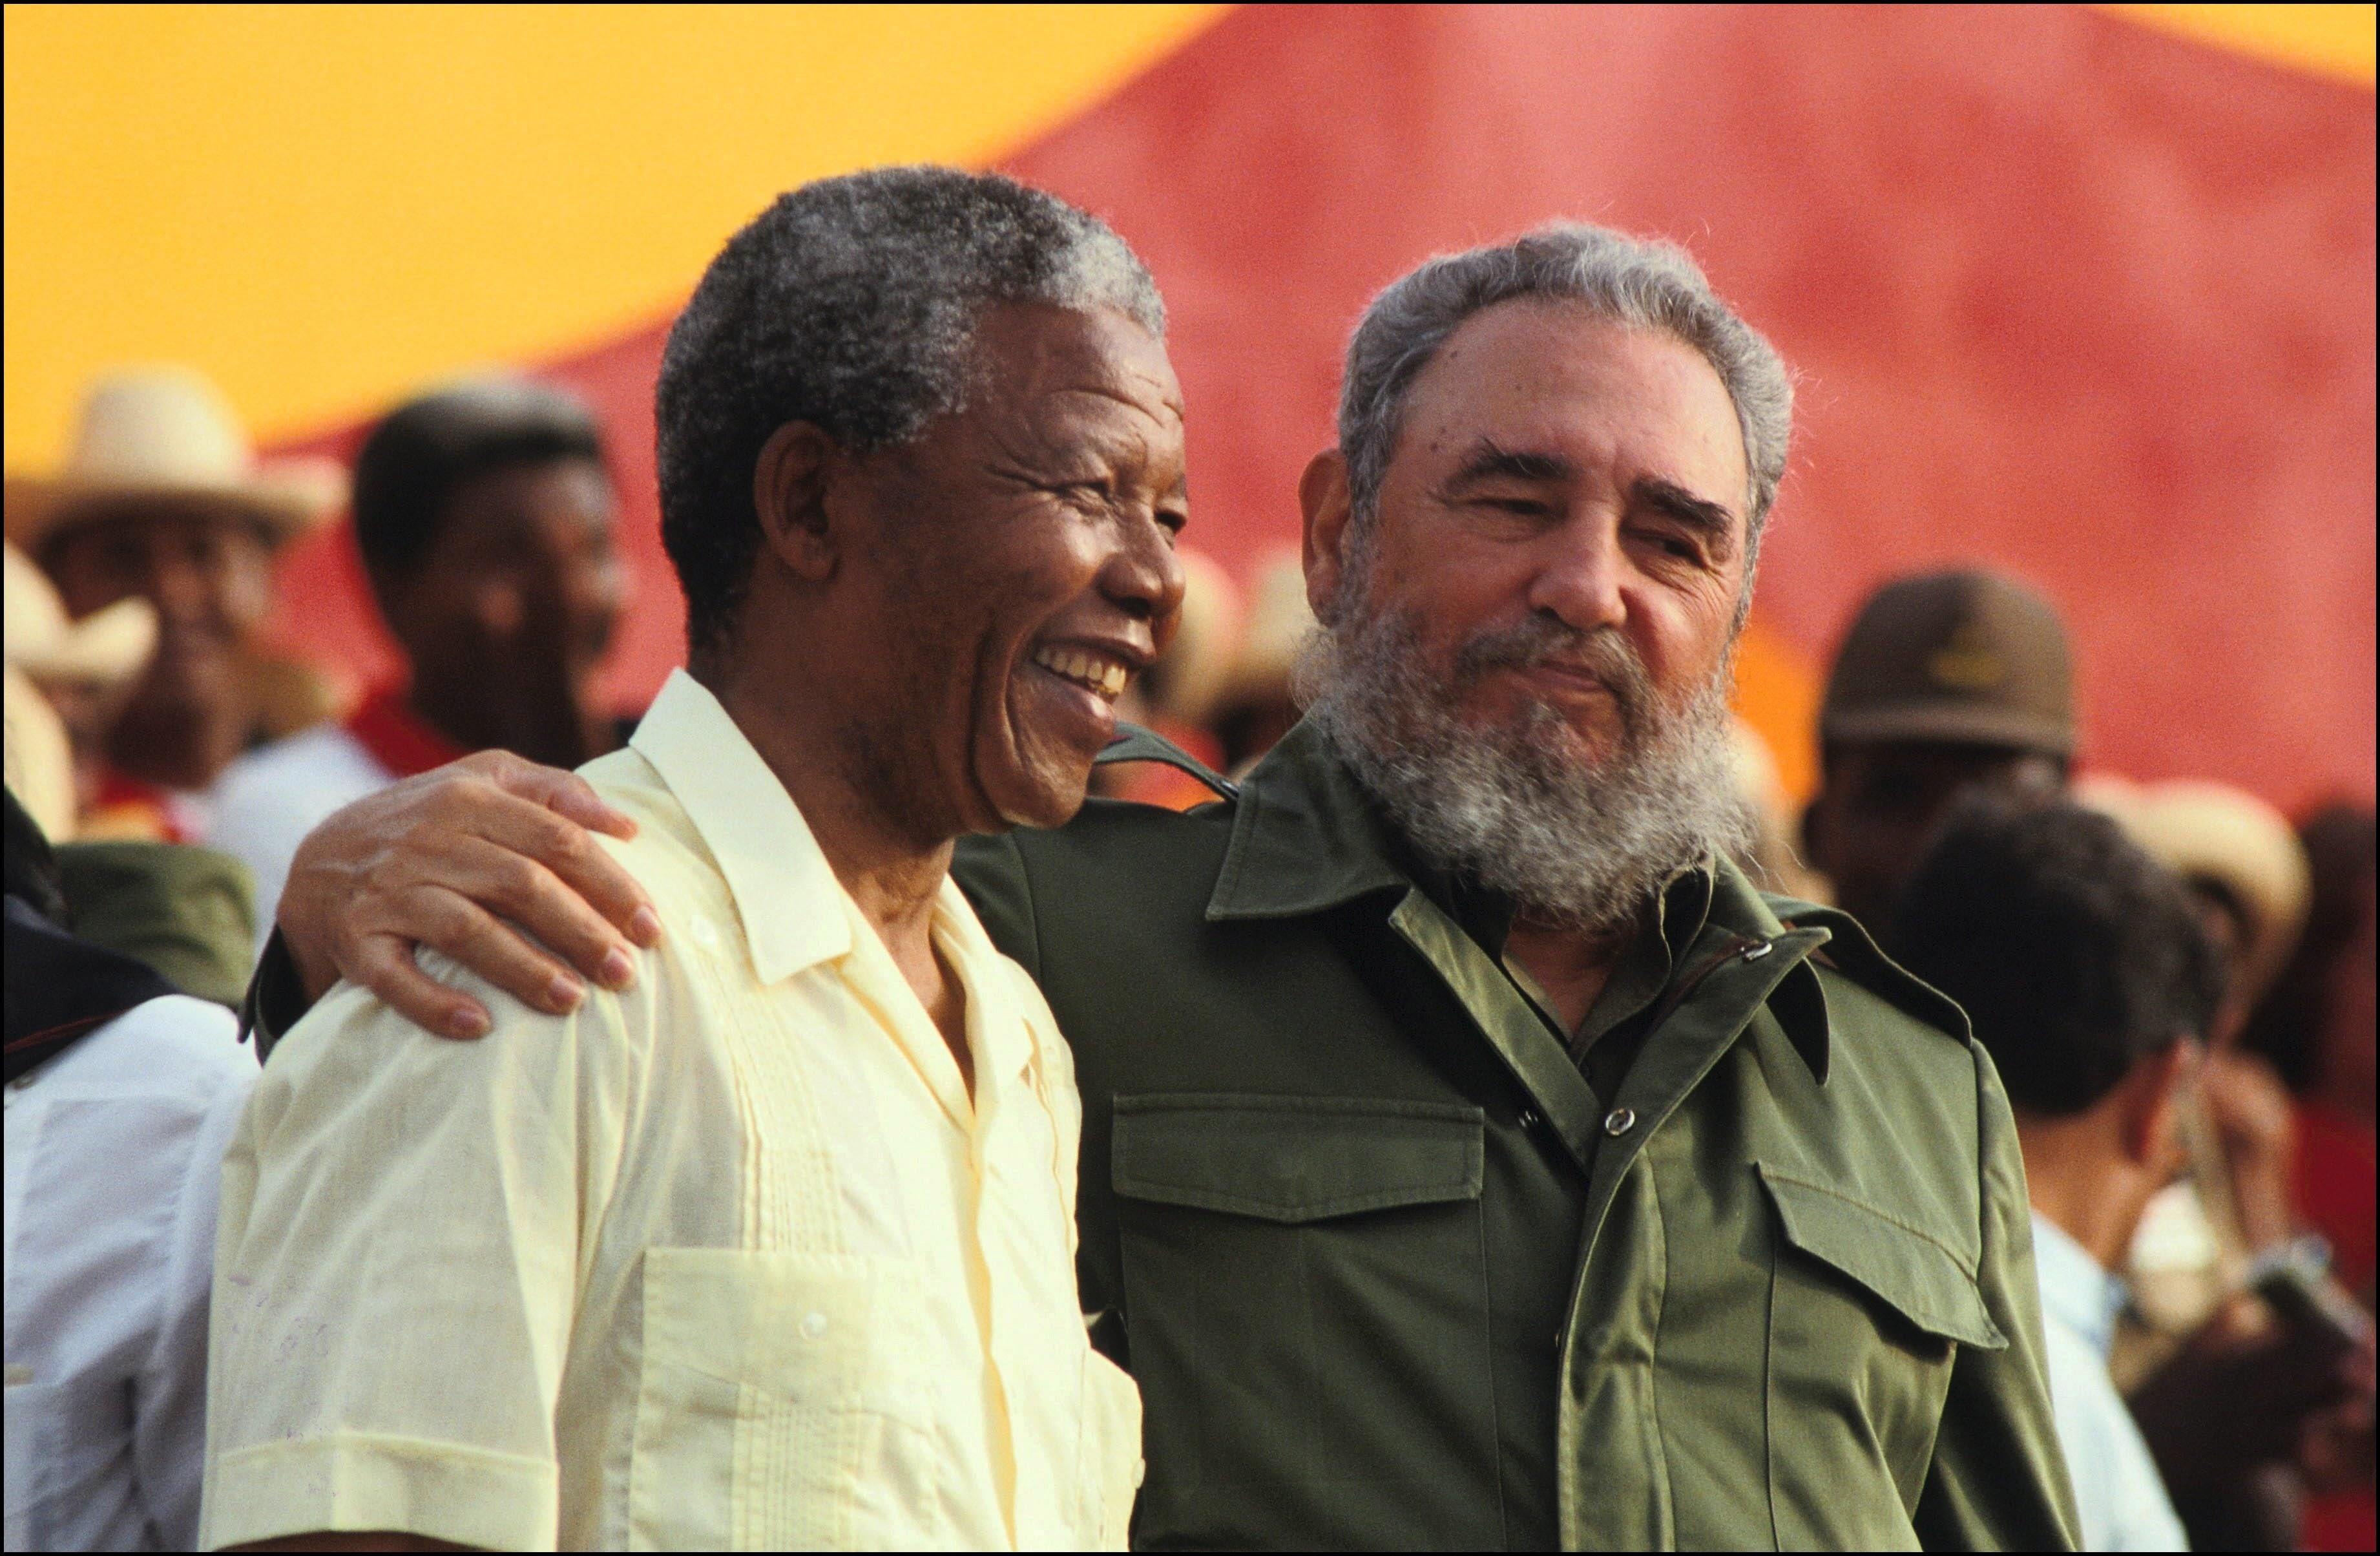 A Brief Understanding of Why Africans Are Hailing Fidel Castro As a Hero